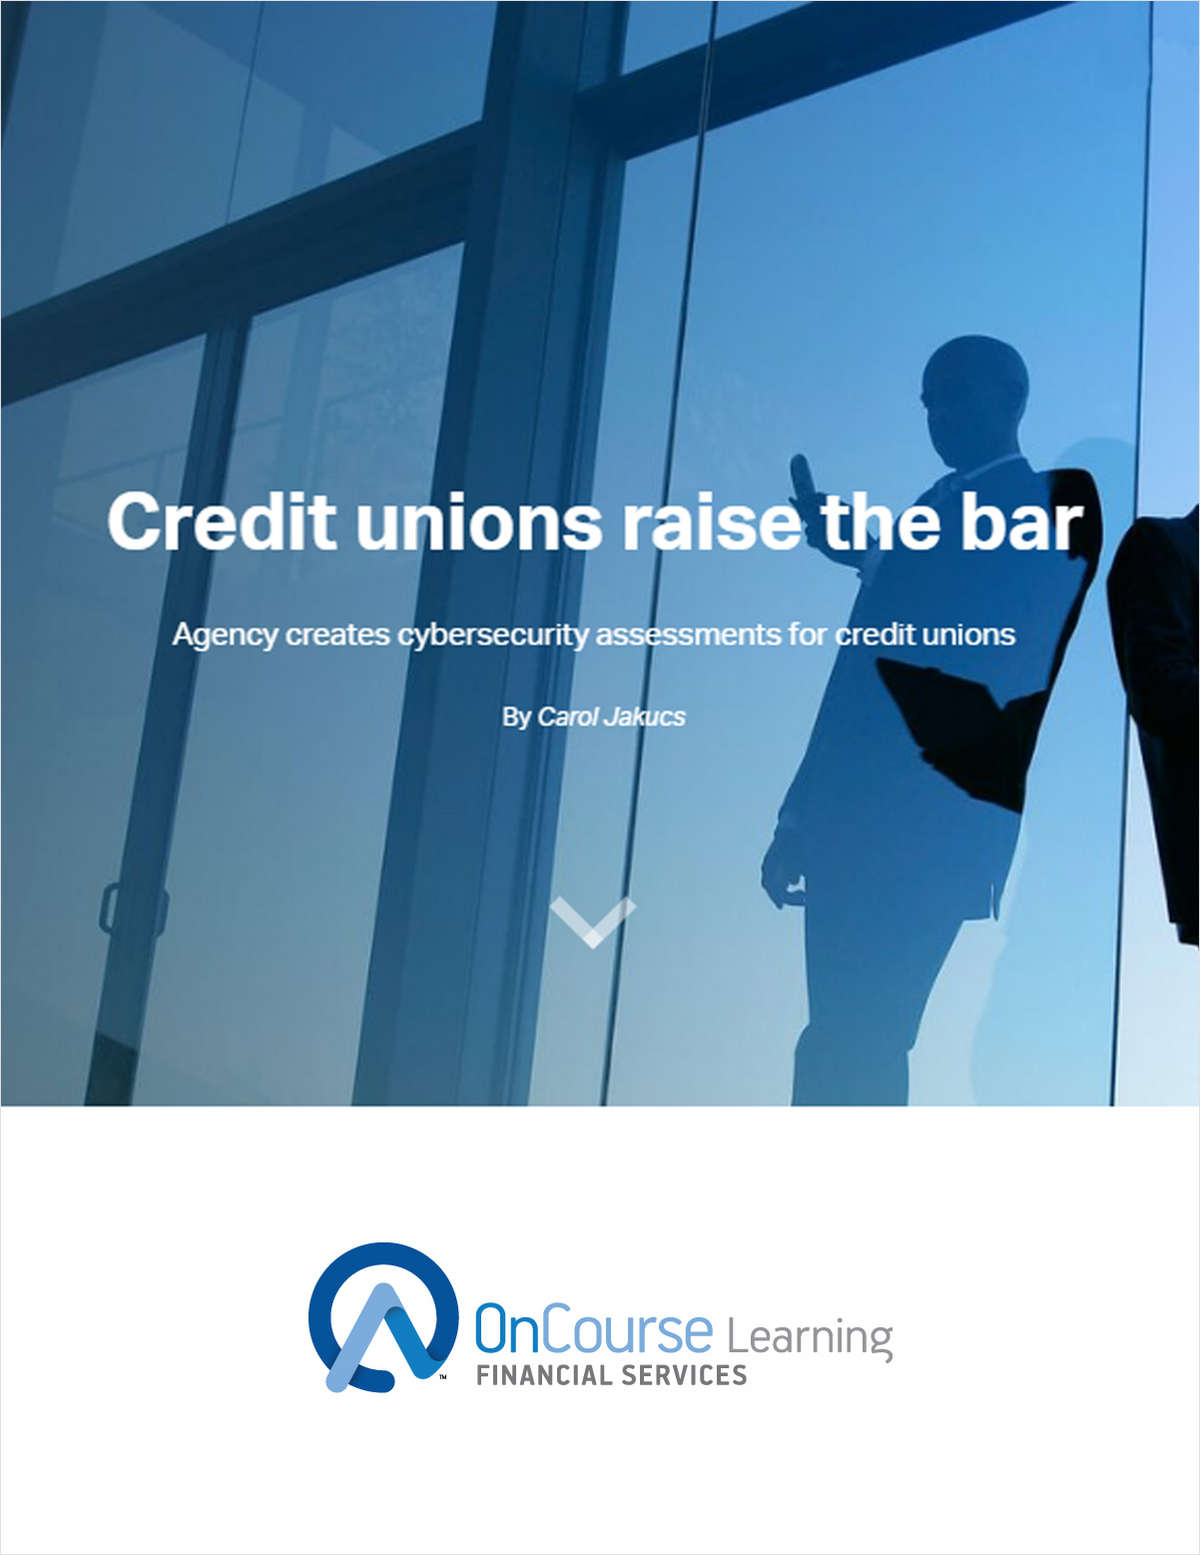 How Credit Unions Are Raising the Bar on Cybersecurity